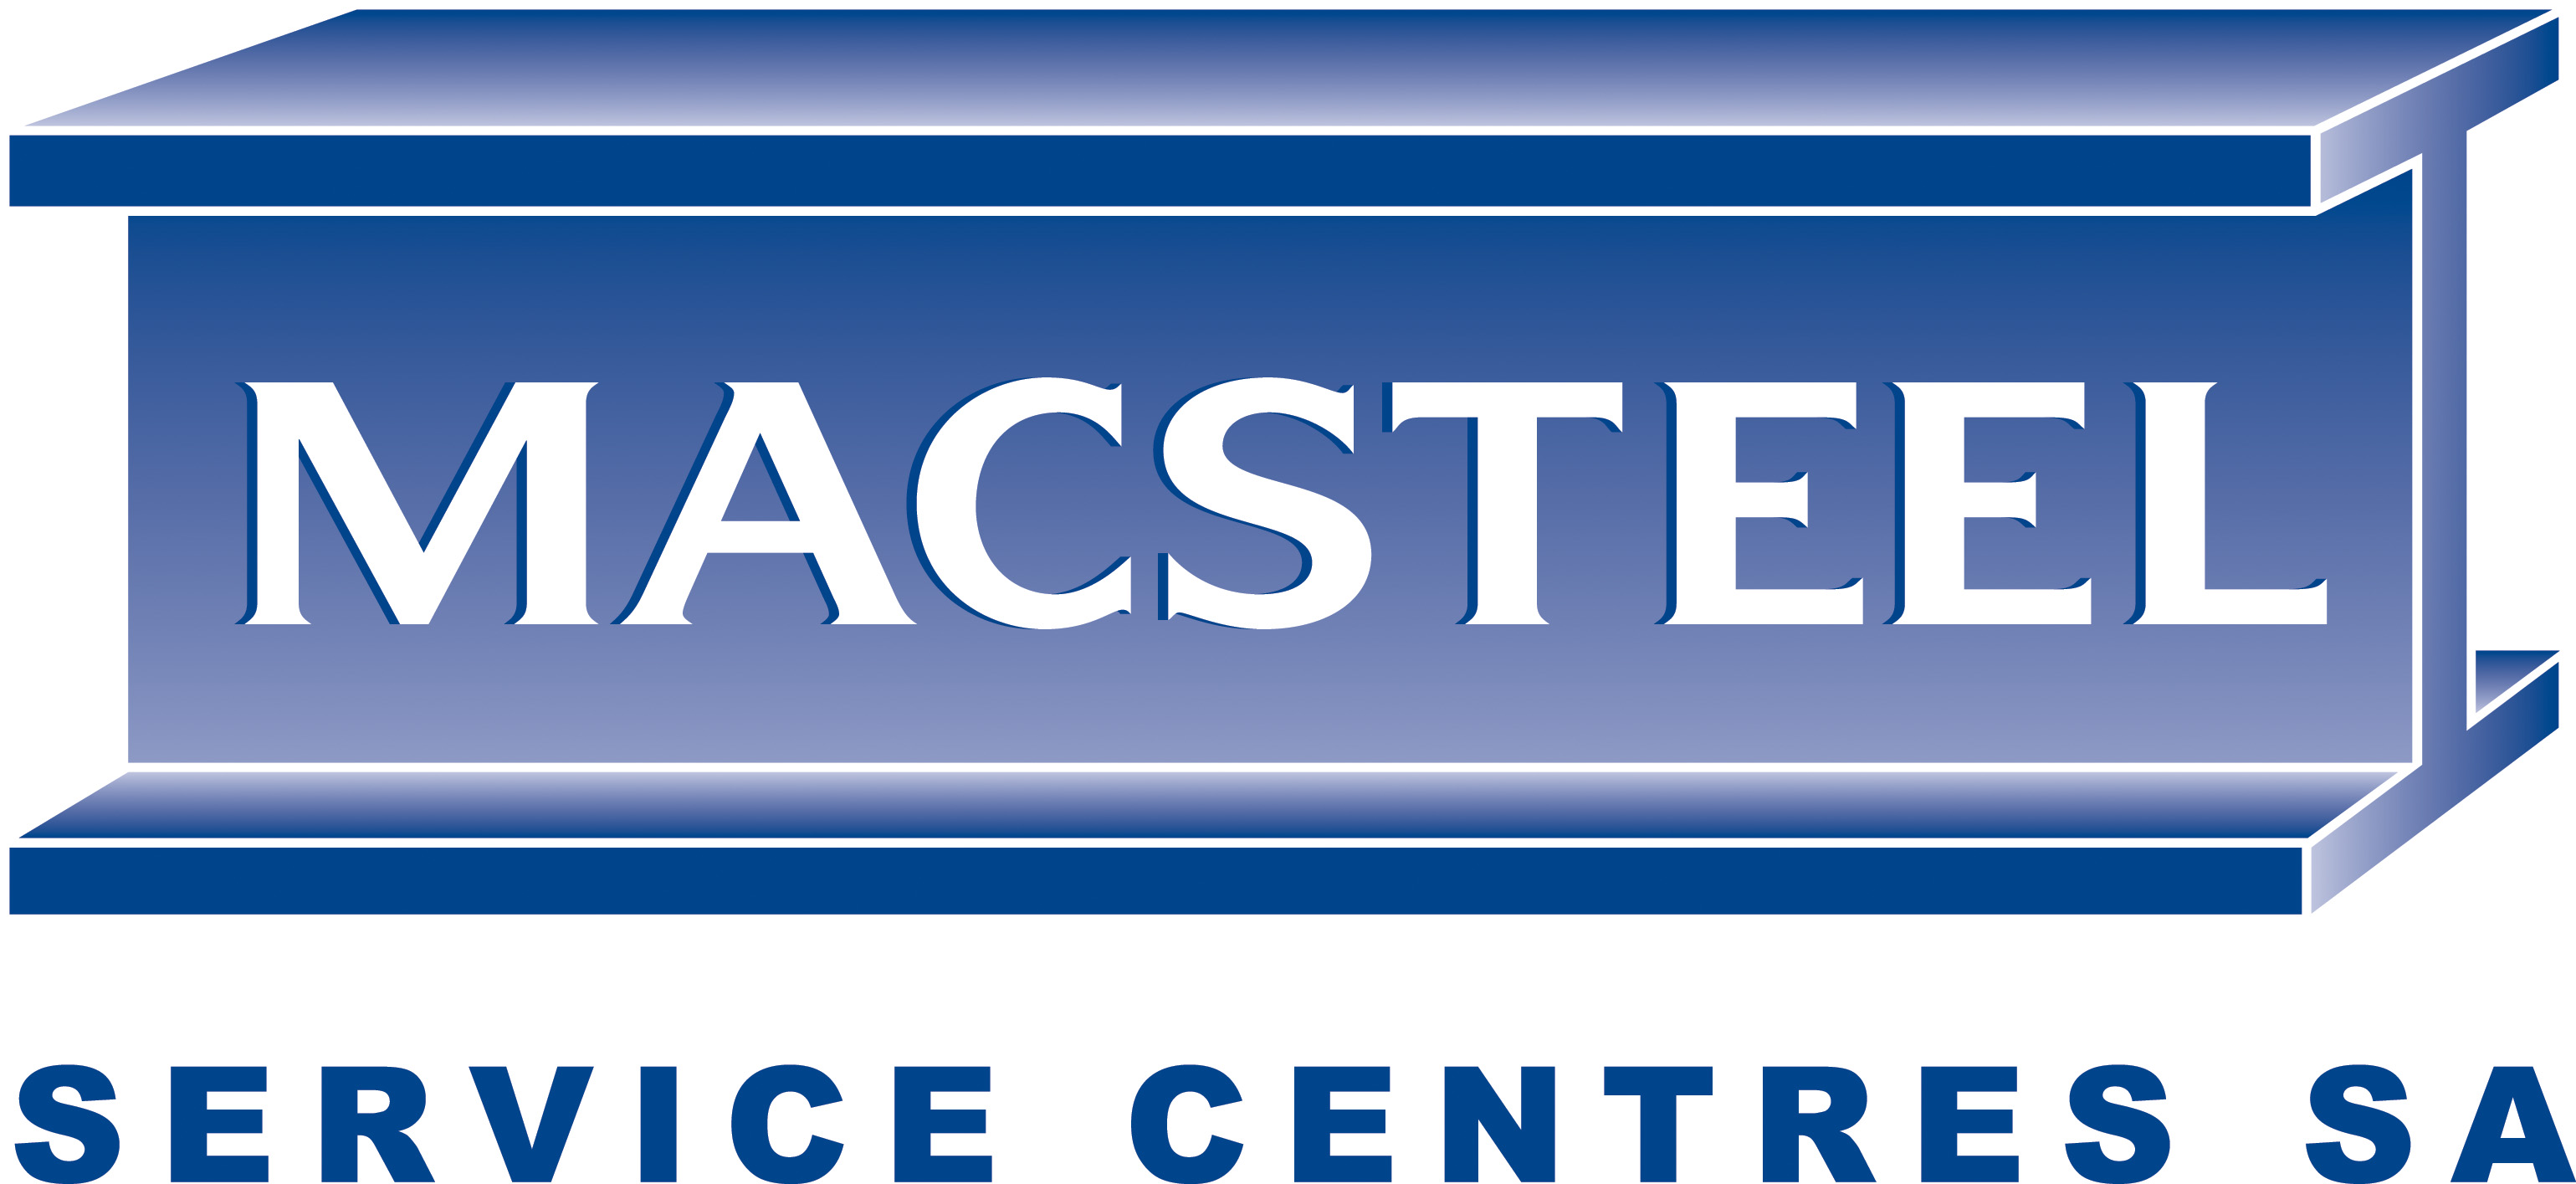 Macsteel Service Centres SA (PTY) LTD - Main Account logo